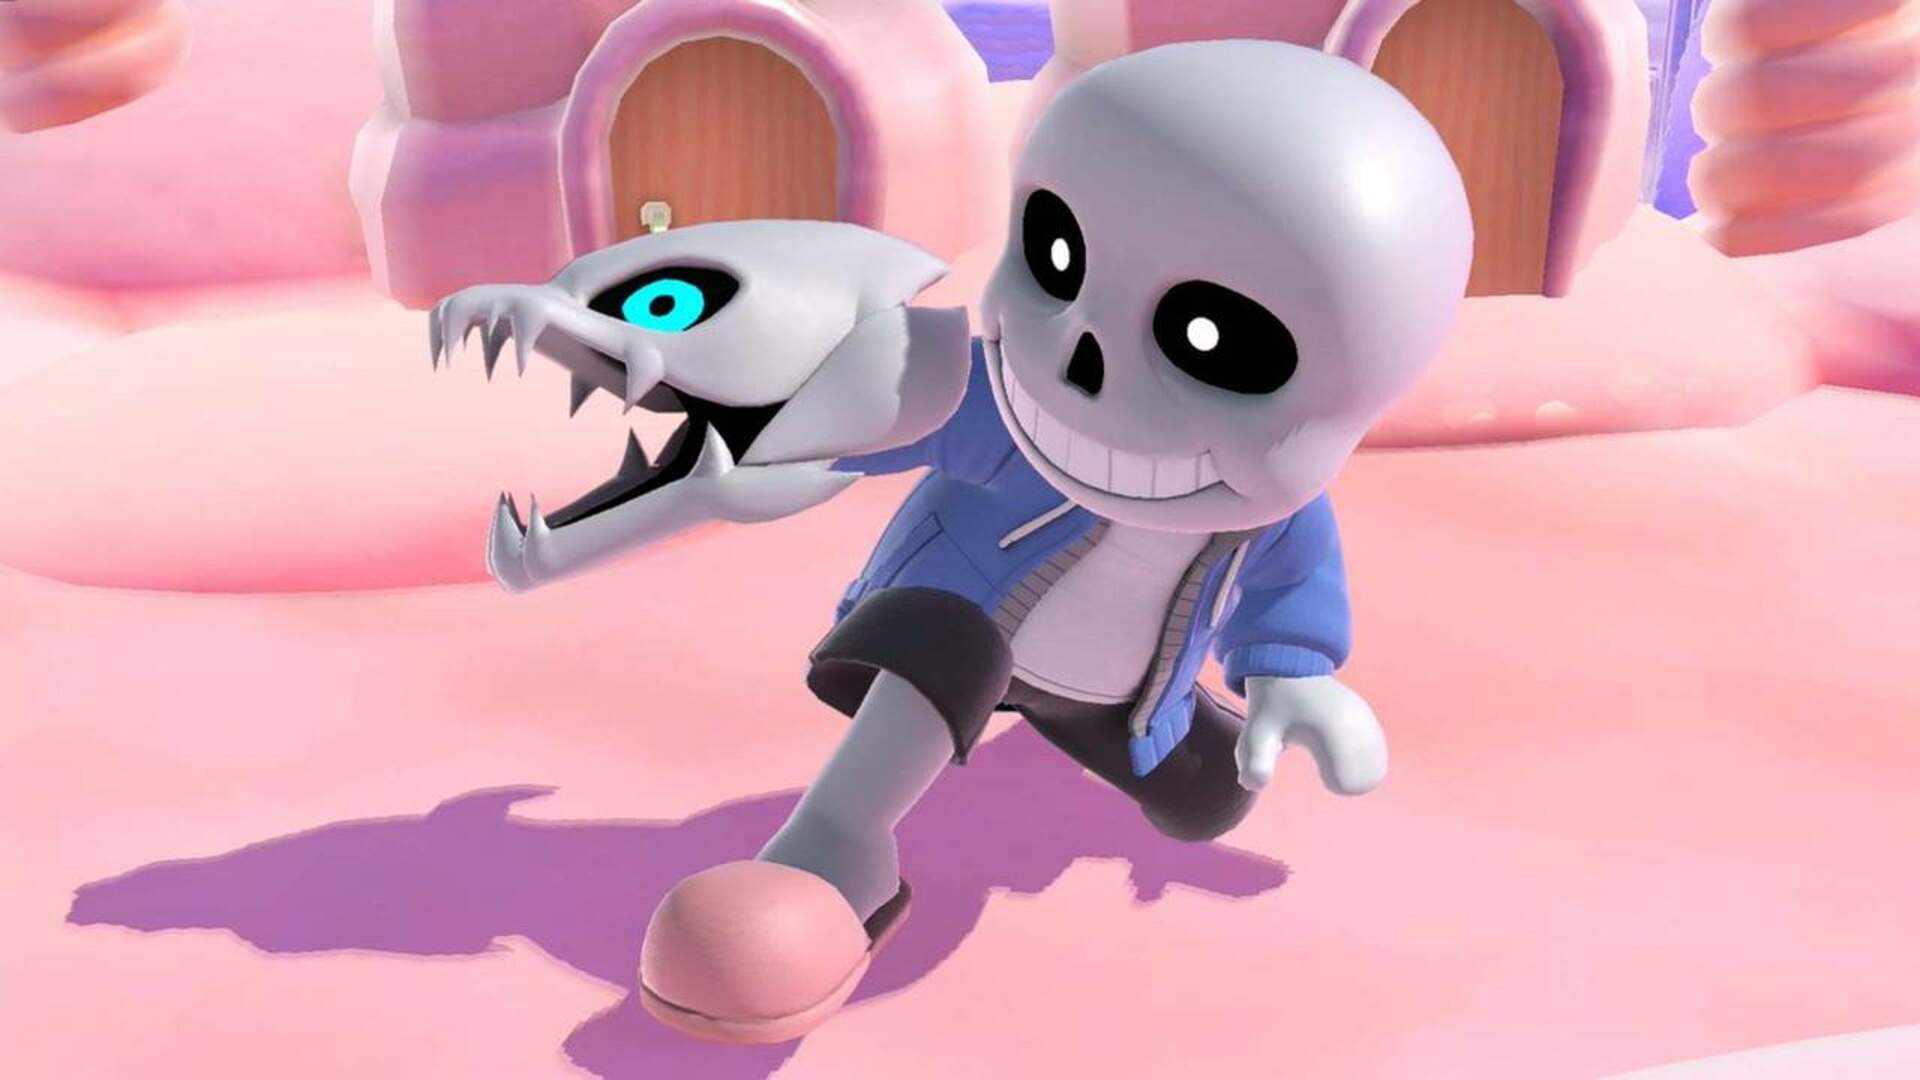 Undertale's Toby Fox Wasn't a Fan of Sans' Tiny Fingers in Super Smash Bros. Ultimate